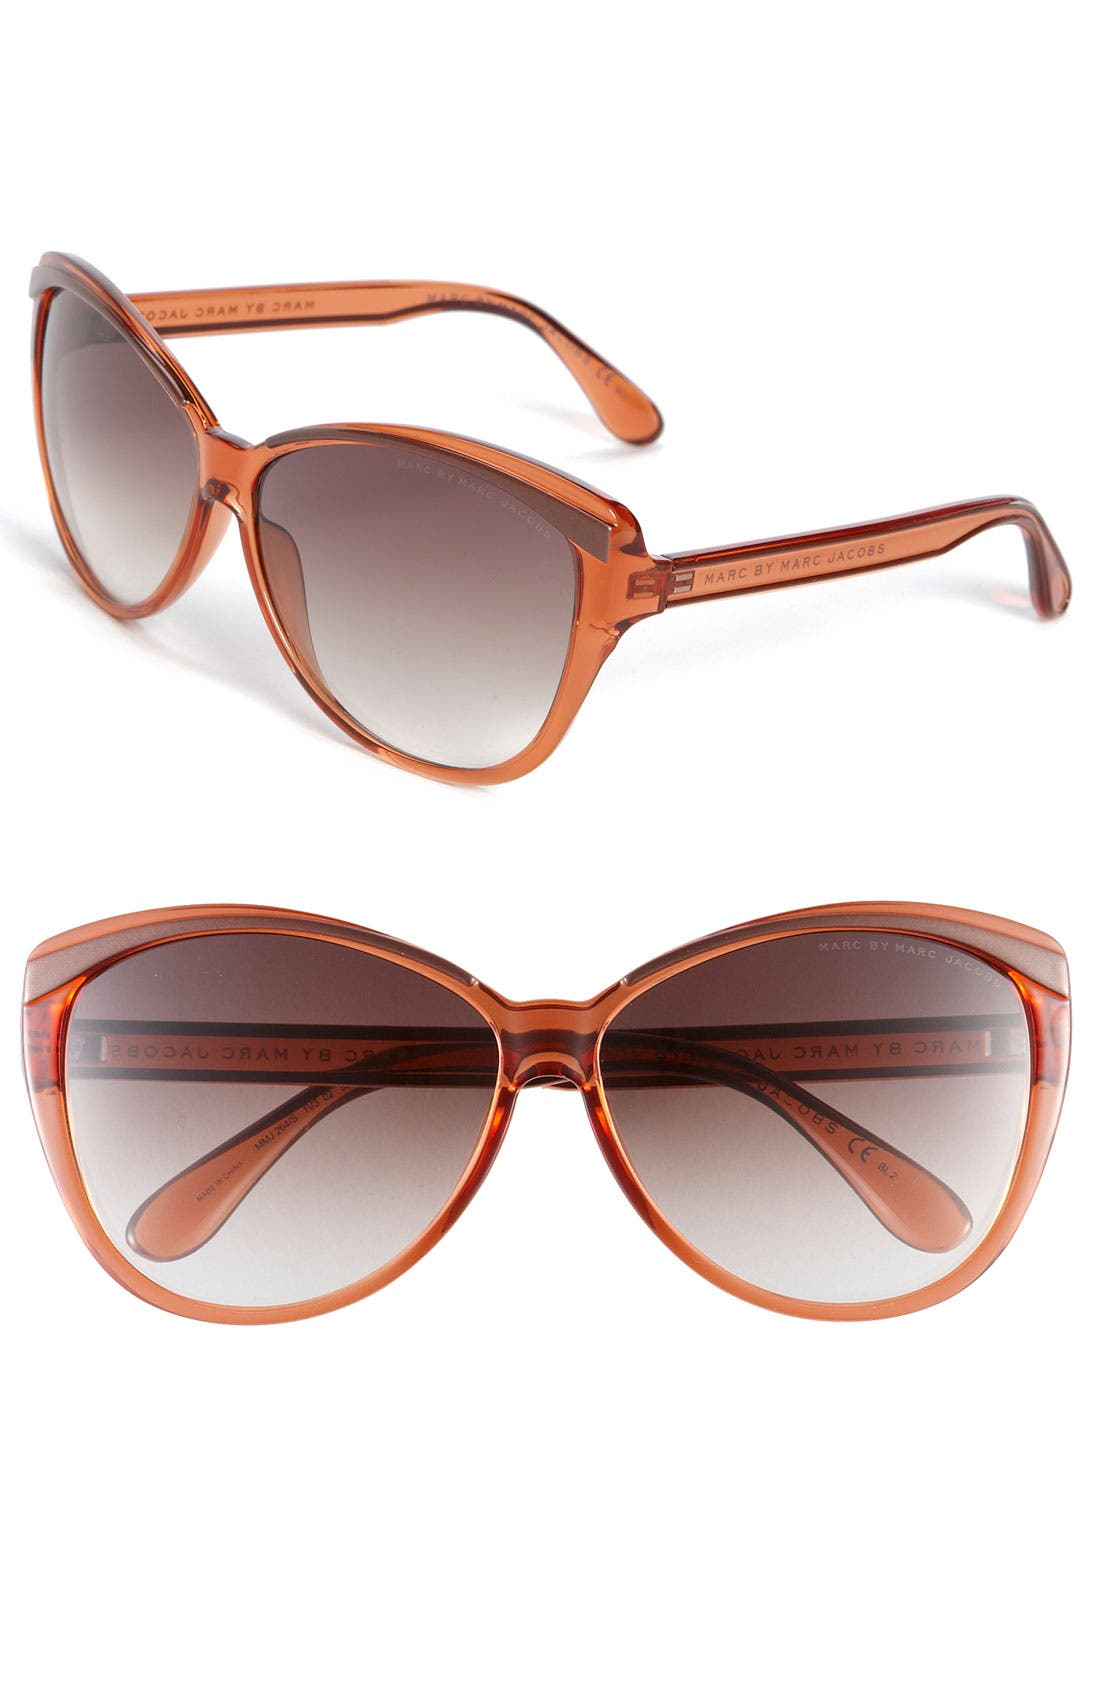 Main Image - MARC BY MARC JACOBS Cat's Eye Sunglasses